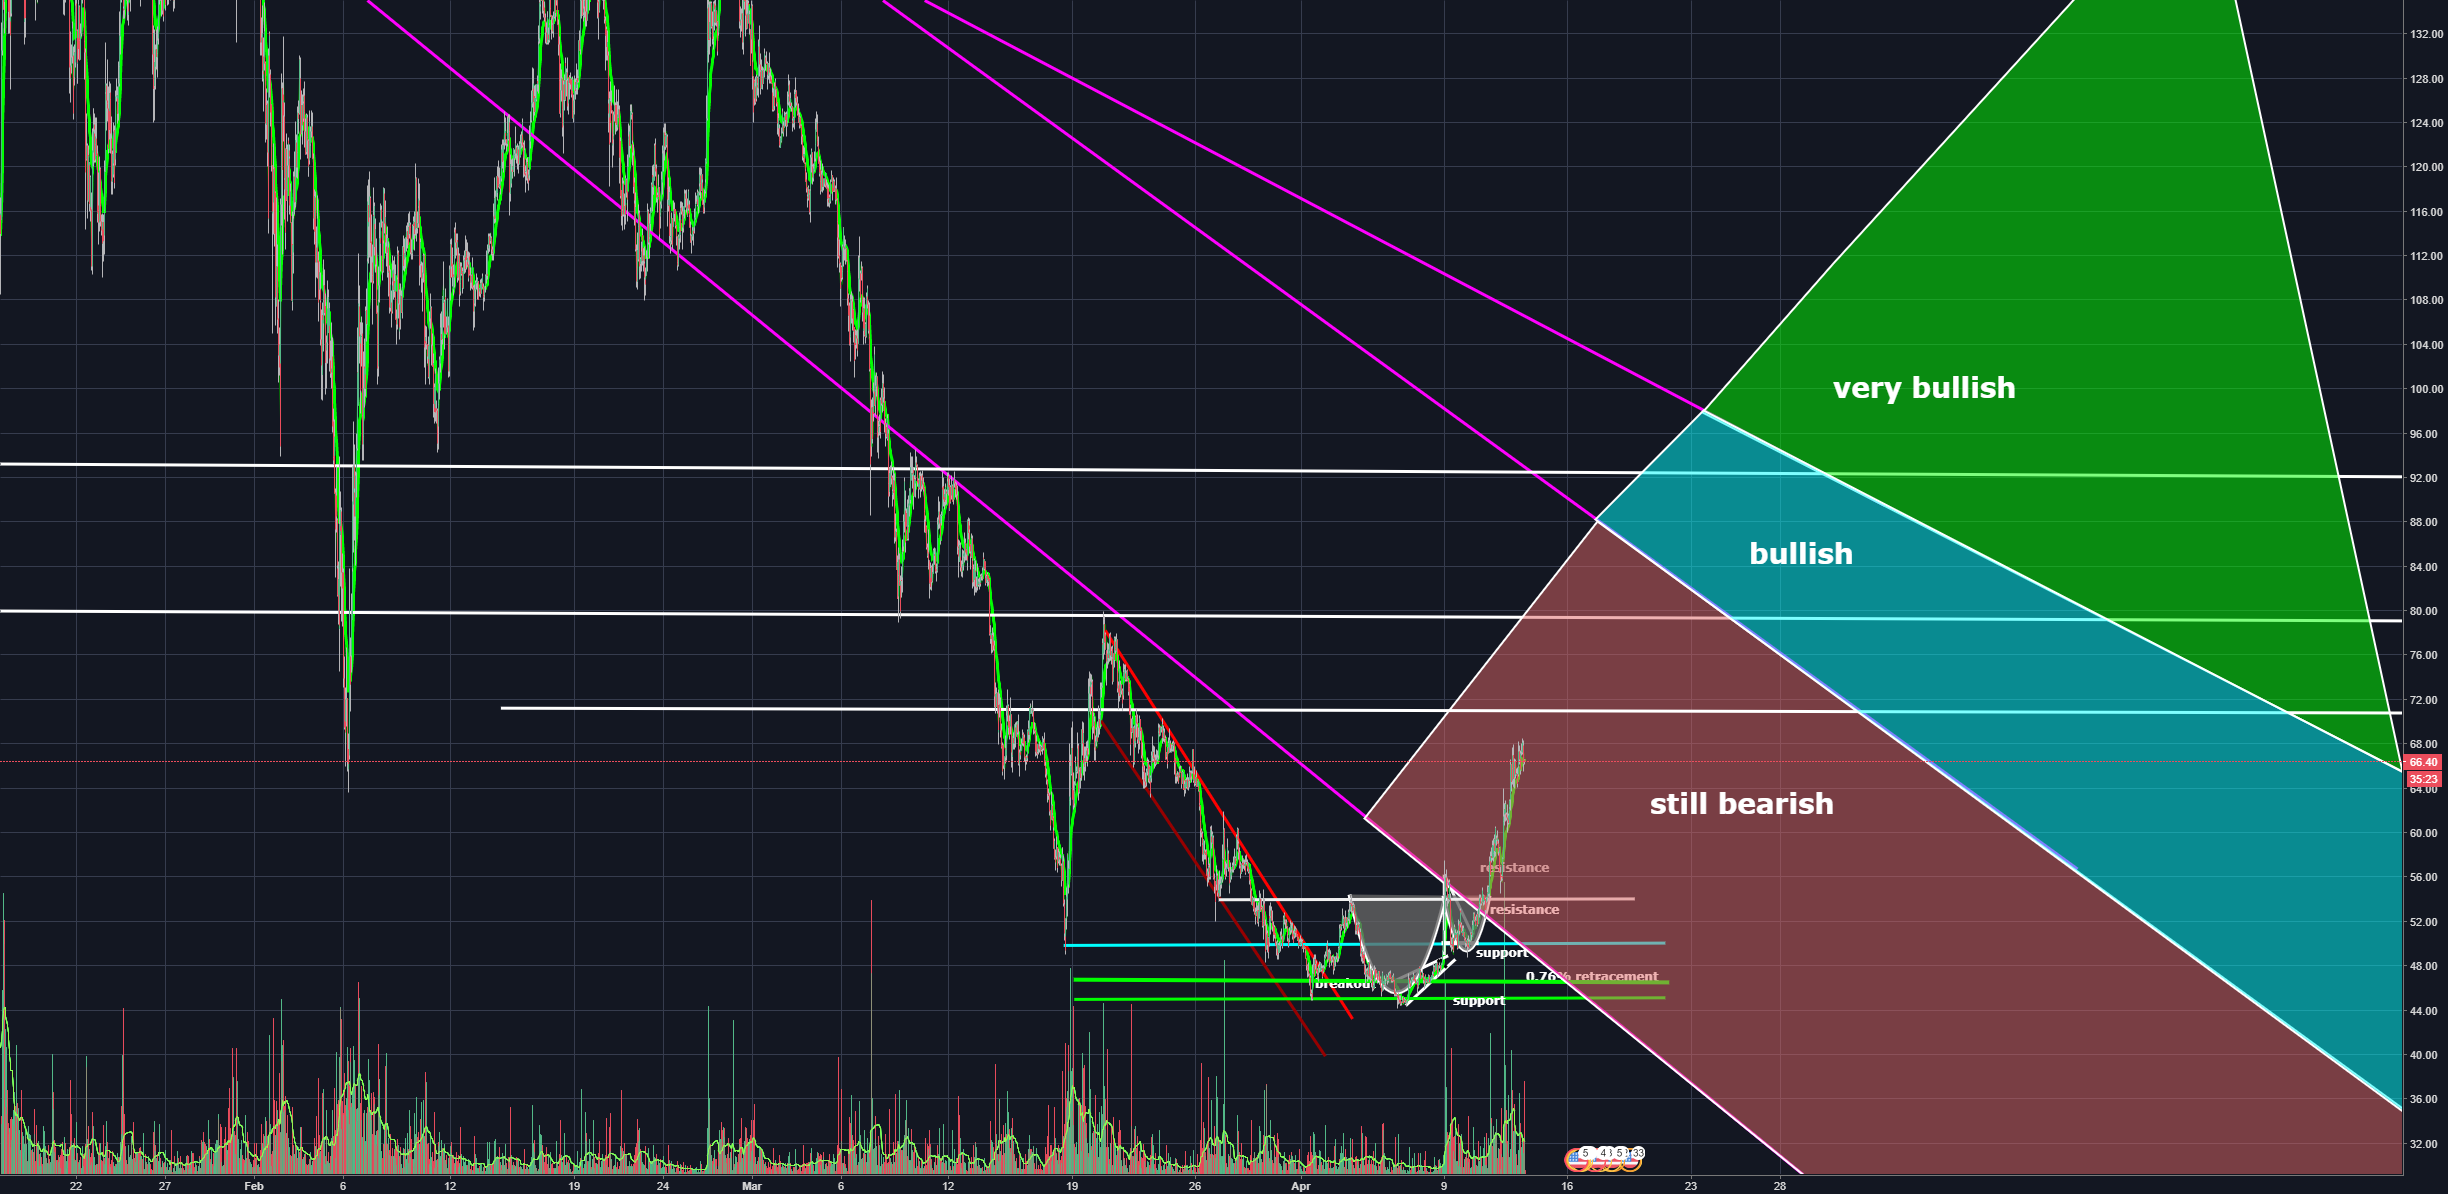 NEO is still bearish.